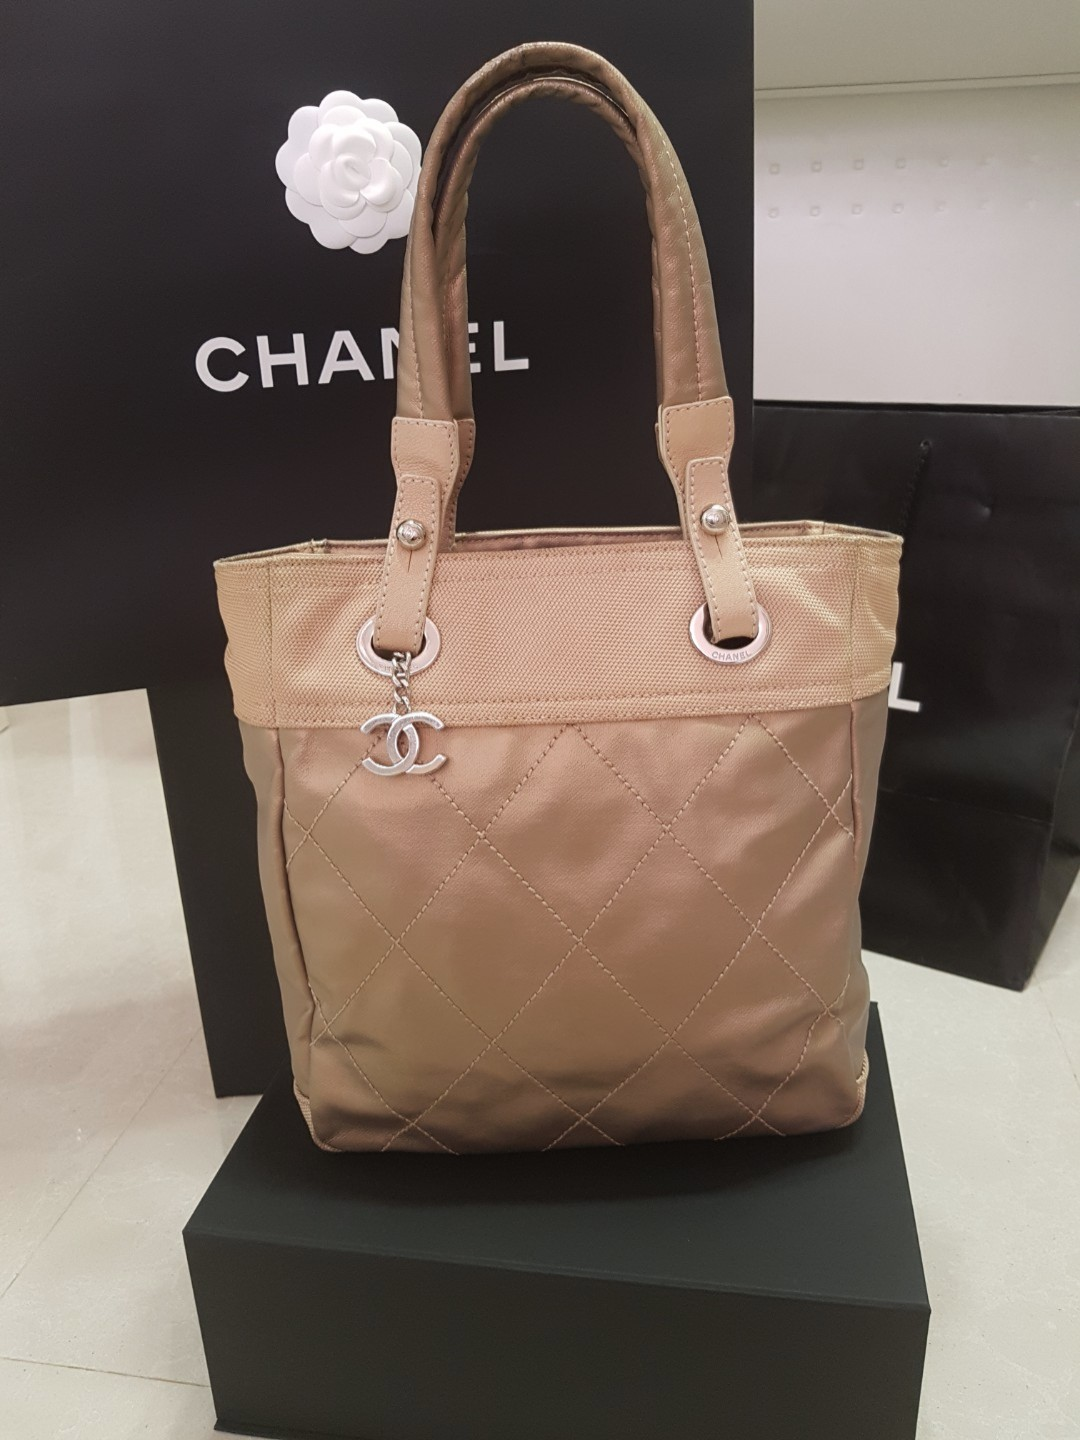 00ad0c8d1185 Chanel tote bag, Luxury, Bags & Wallets, Handbags on Carousell